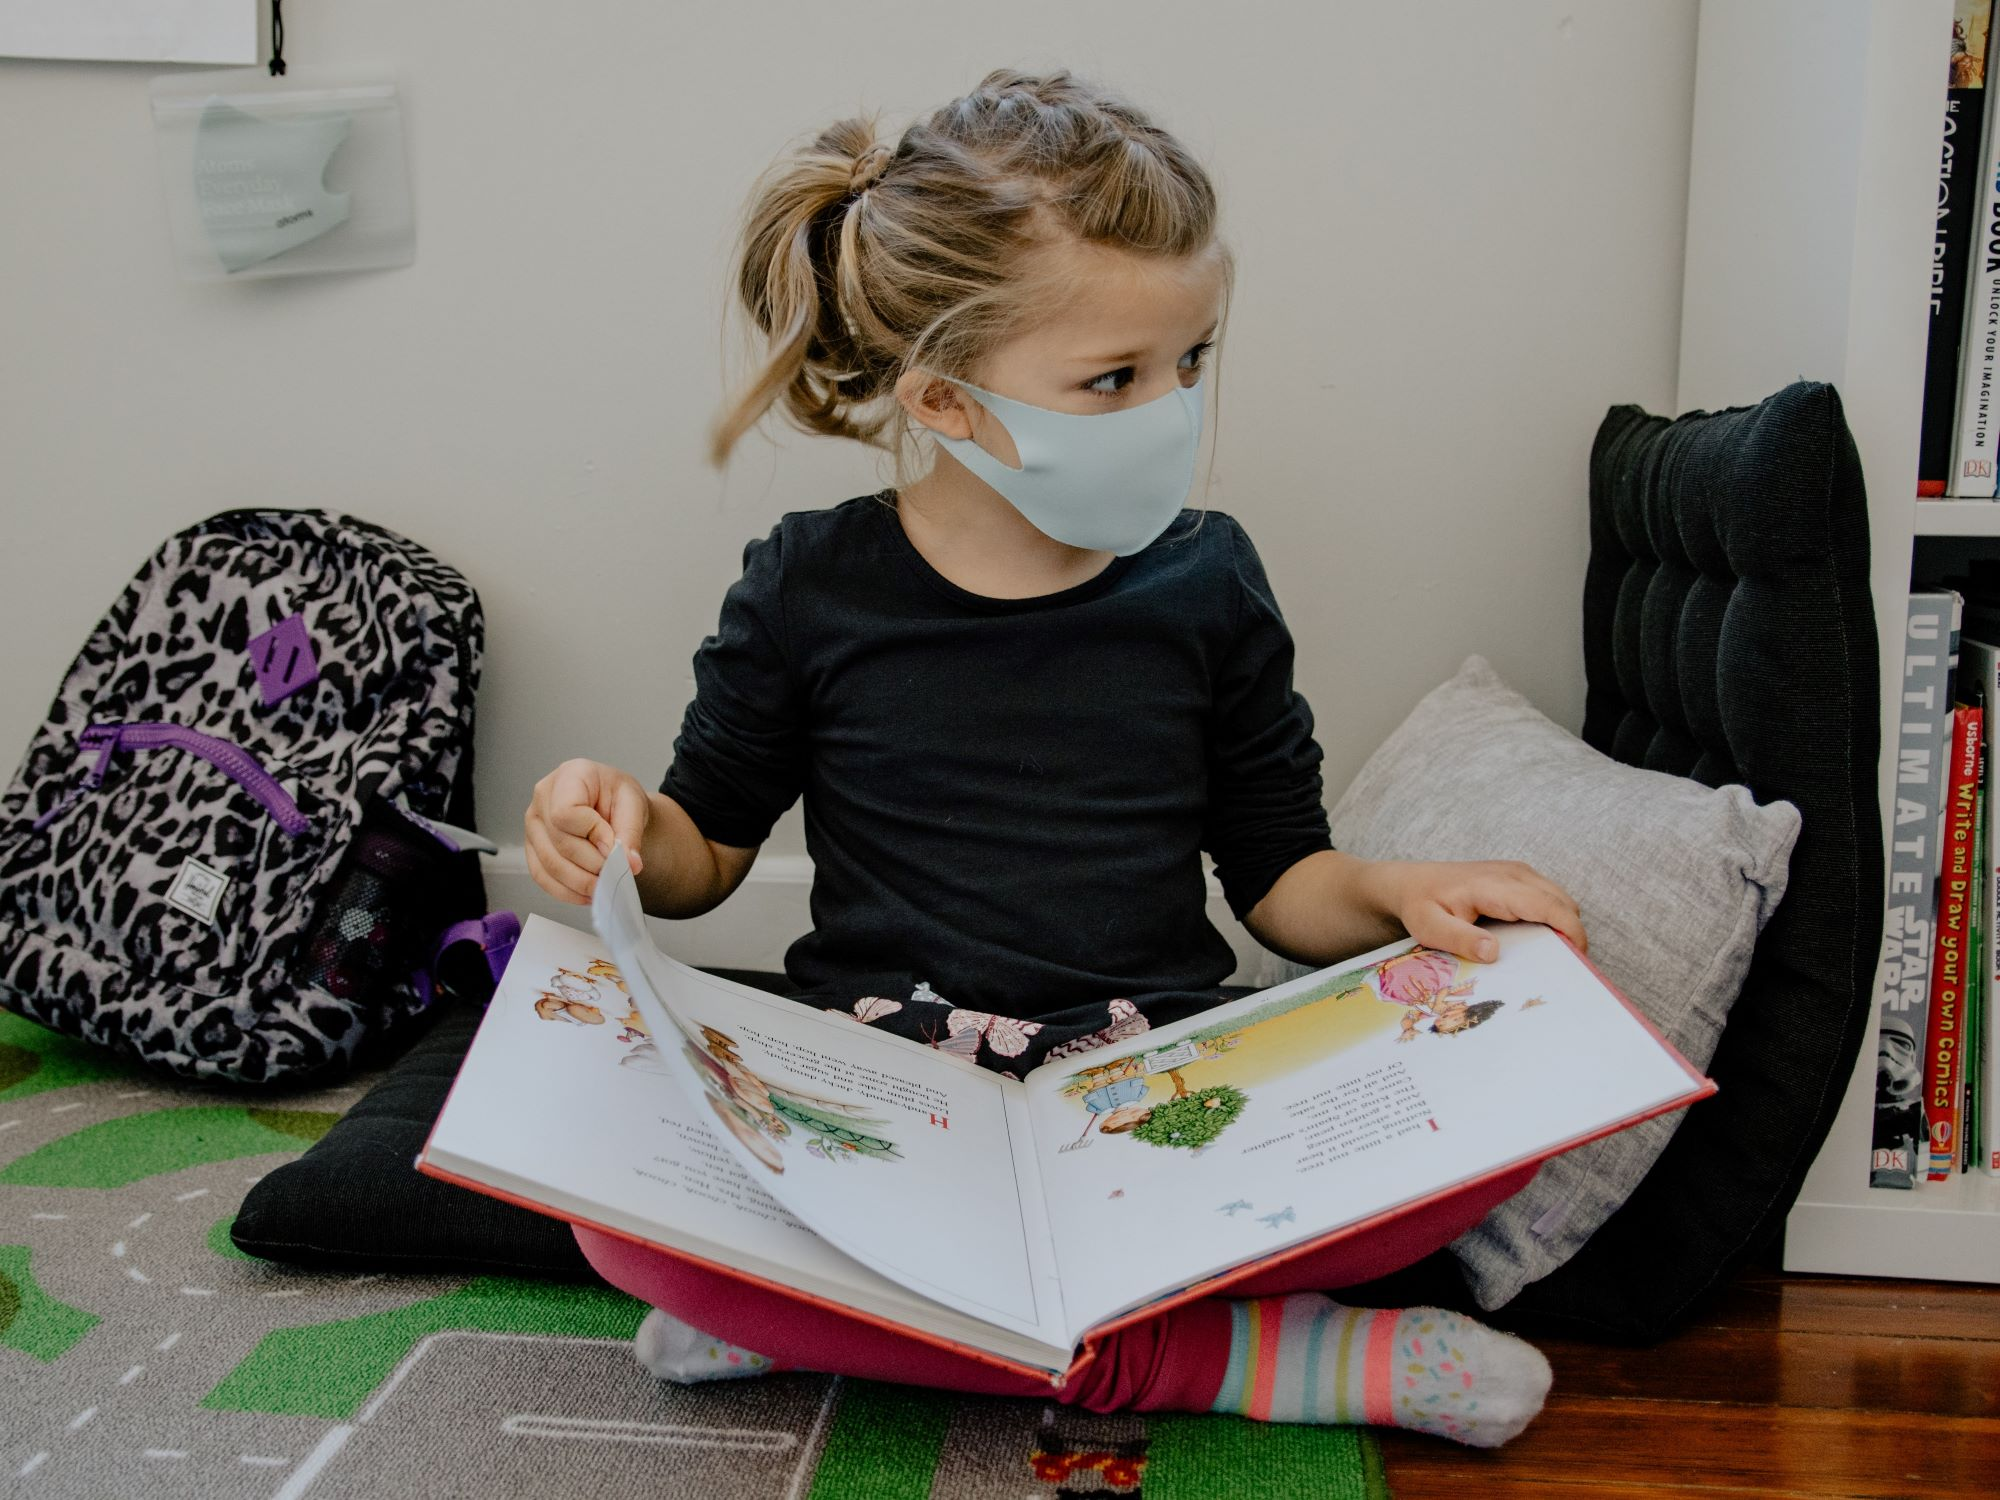 A child wearing a mask reading a picture book